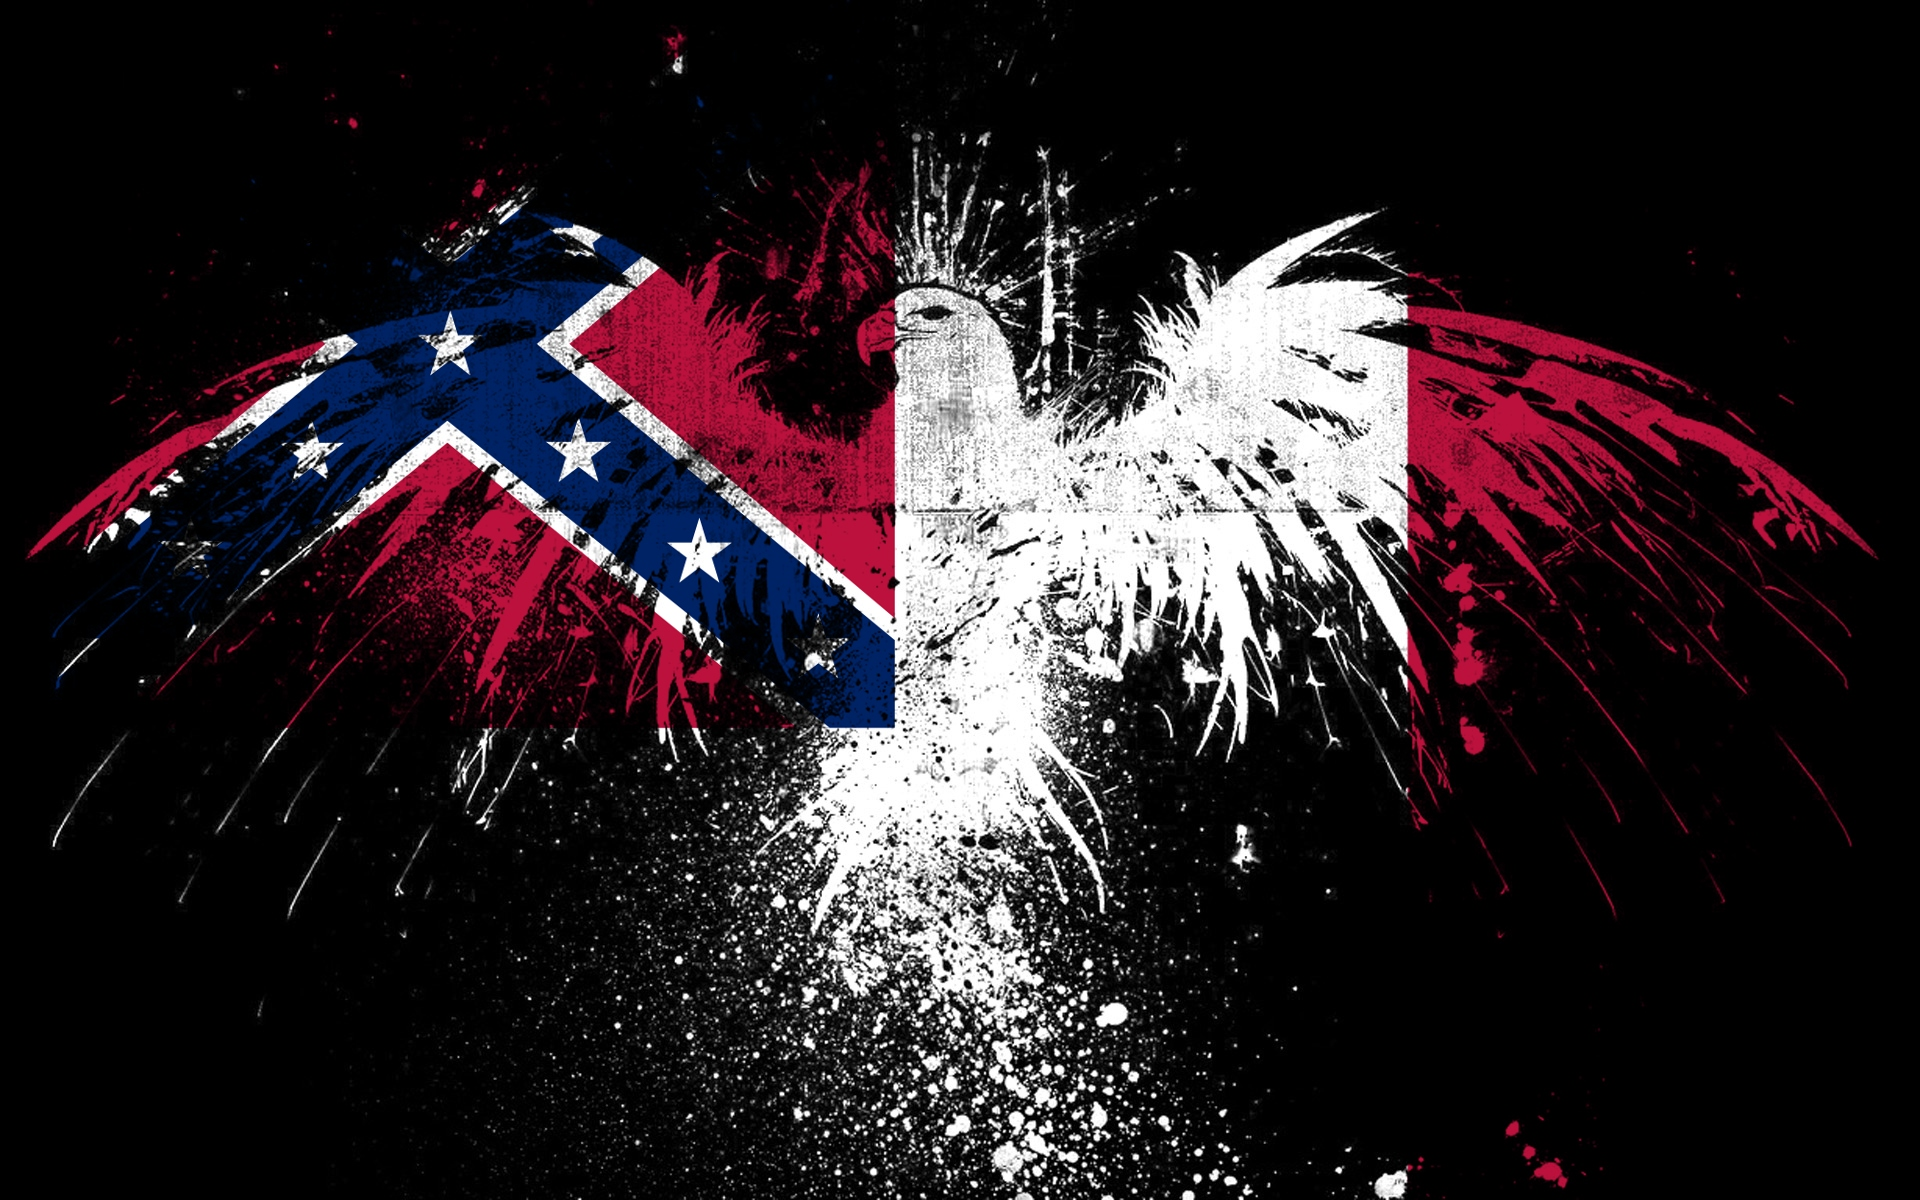 confederate battle flag ftfy 3rd national of HD Wallpaper 1920x1200